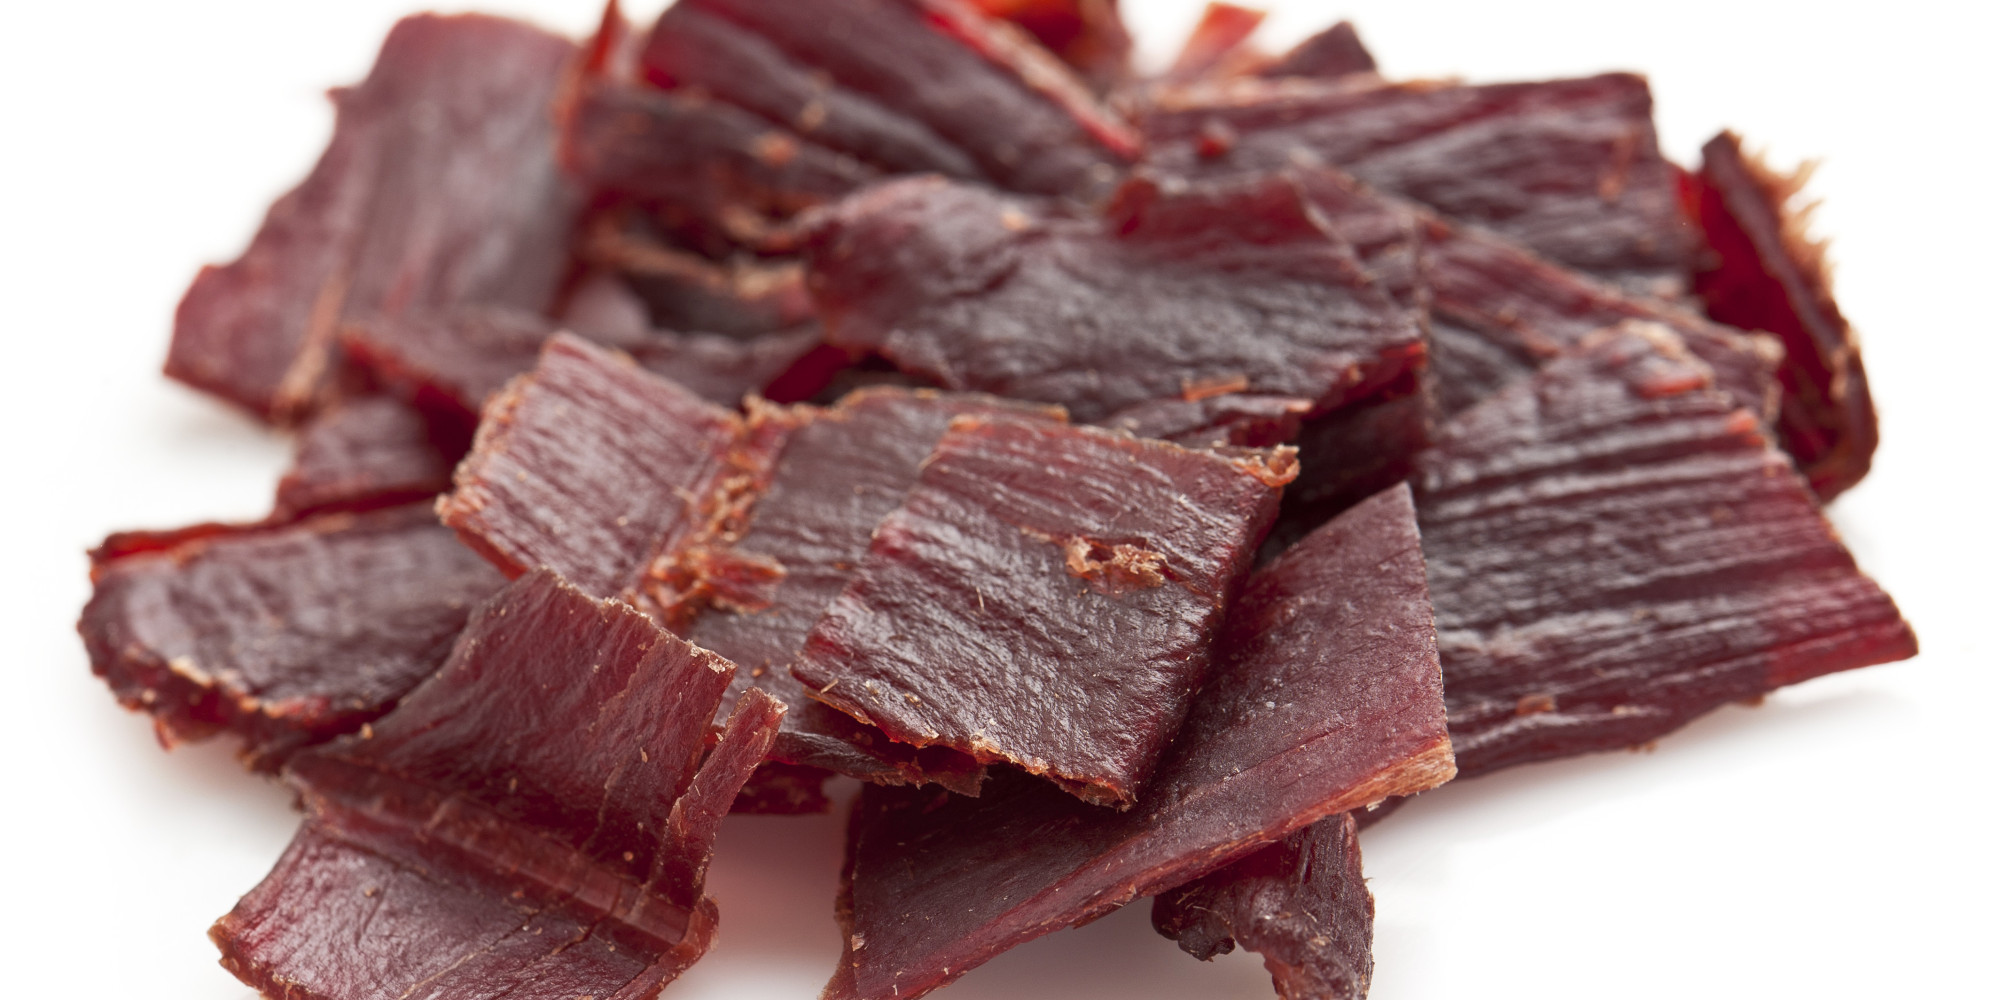 Guangdong Police Seize Beef Jerky Made With Diseased Pork | The ...